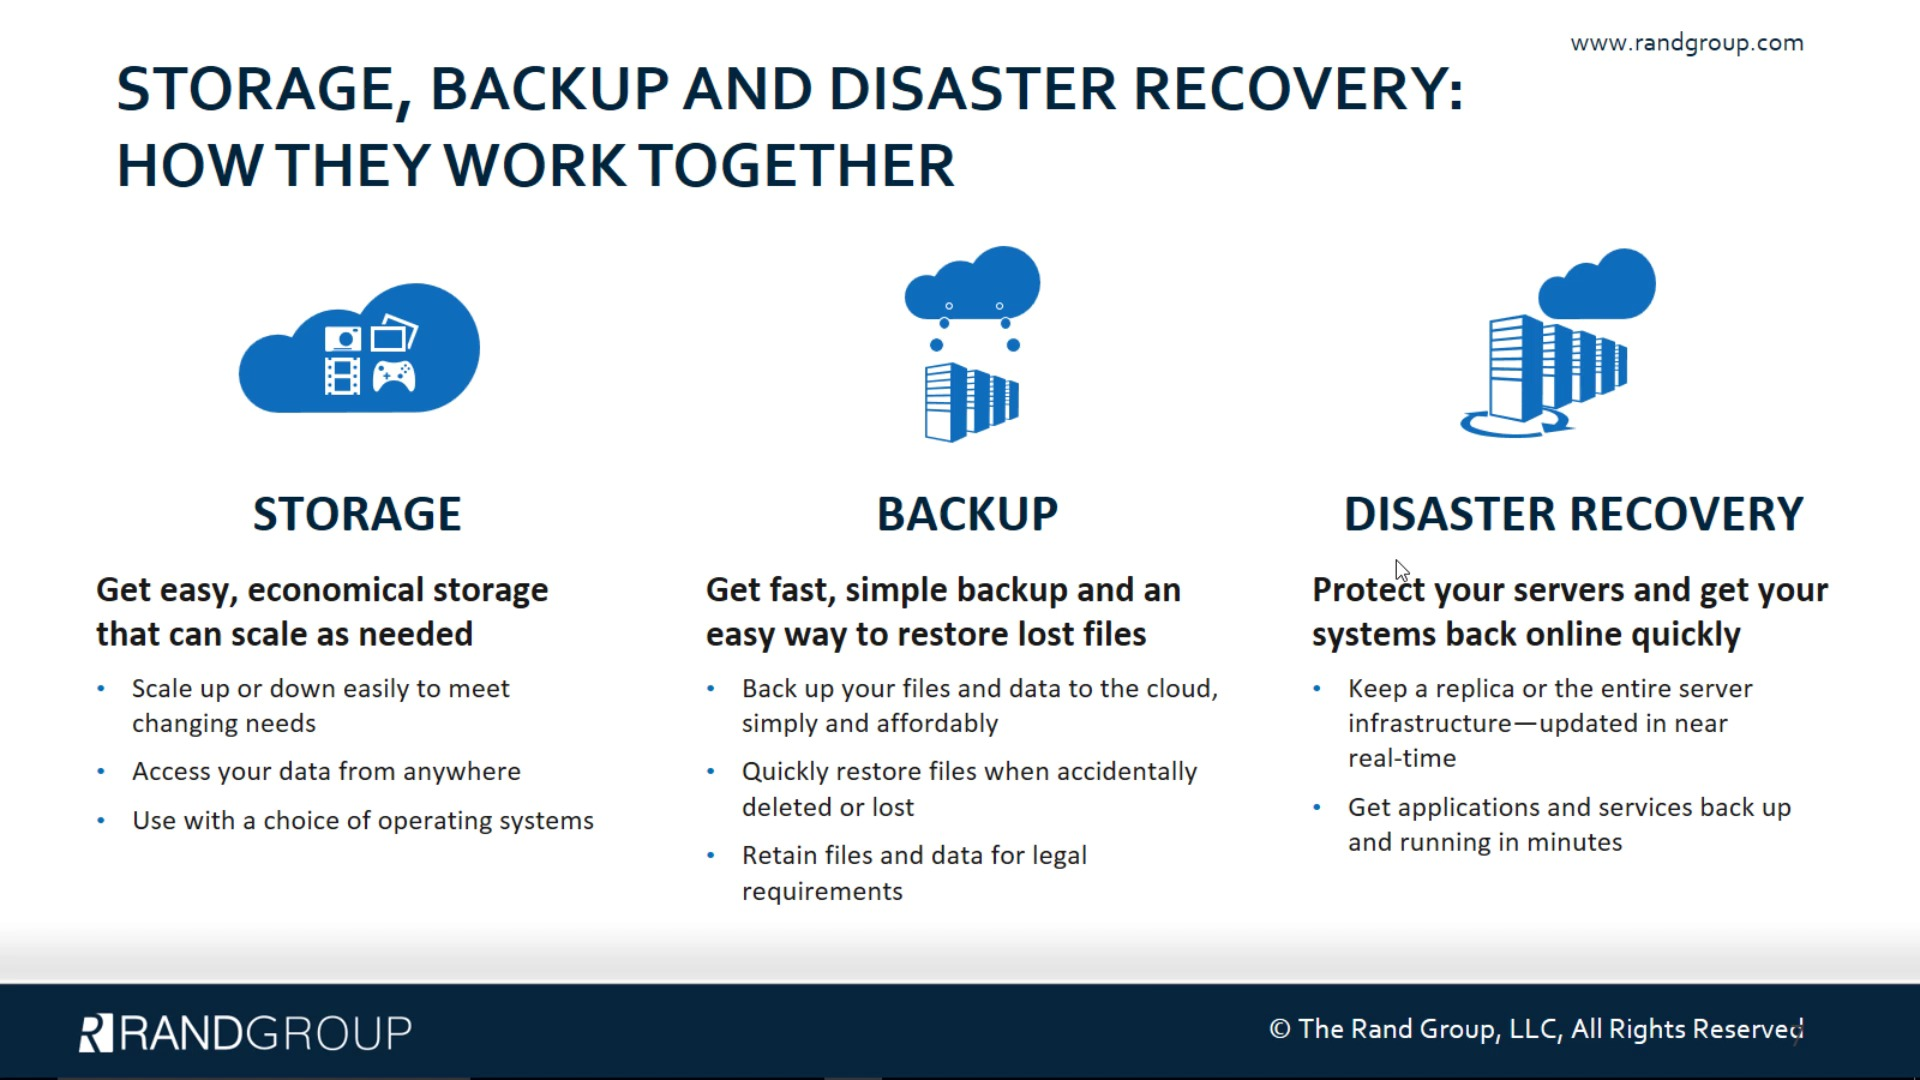 Disaster Recovery Specialist How Storage Backup And Disaster Recovery Work Together